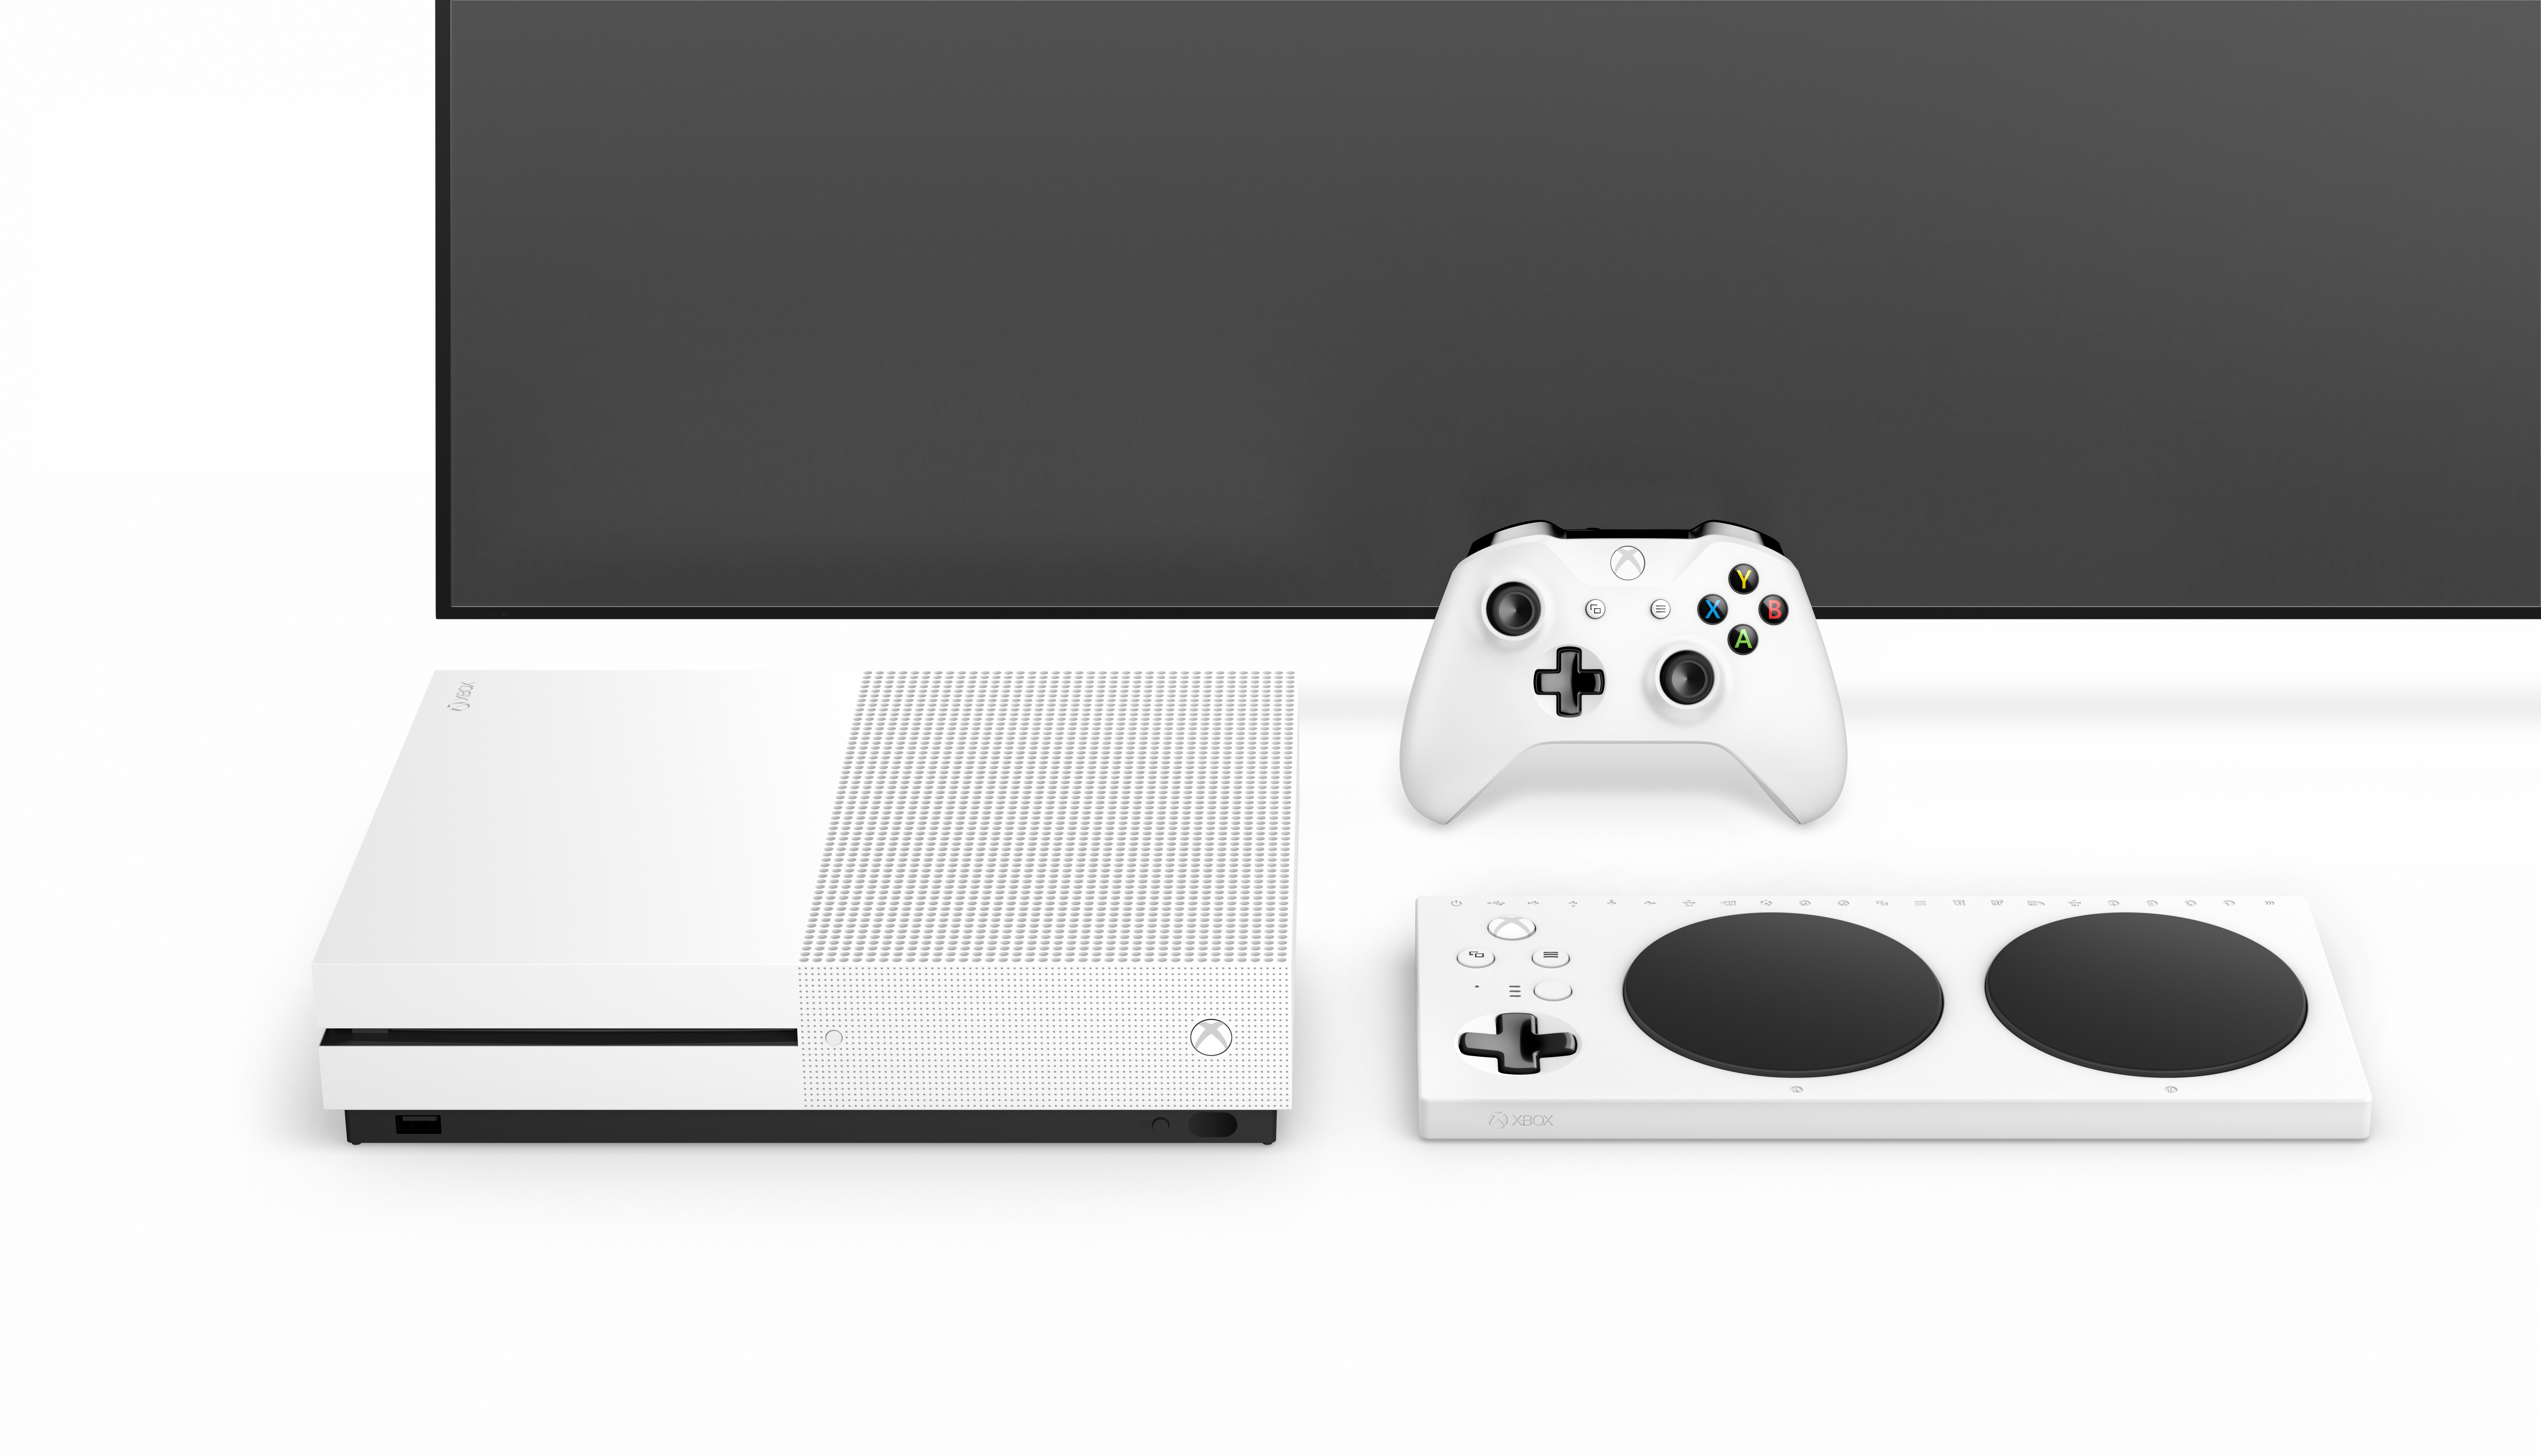 The Xbox Adaptive Controller